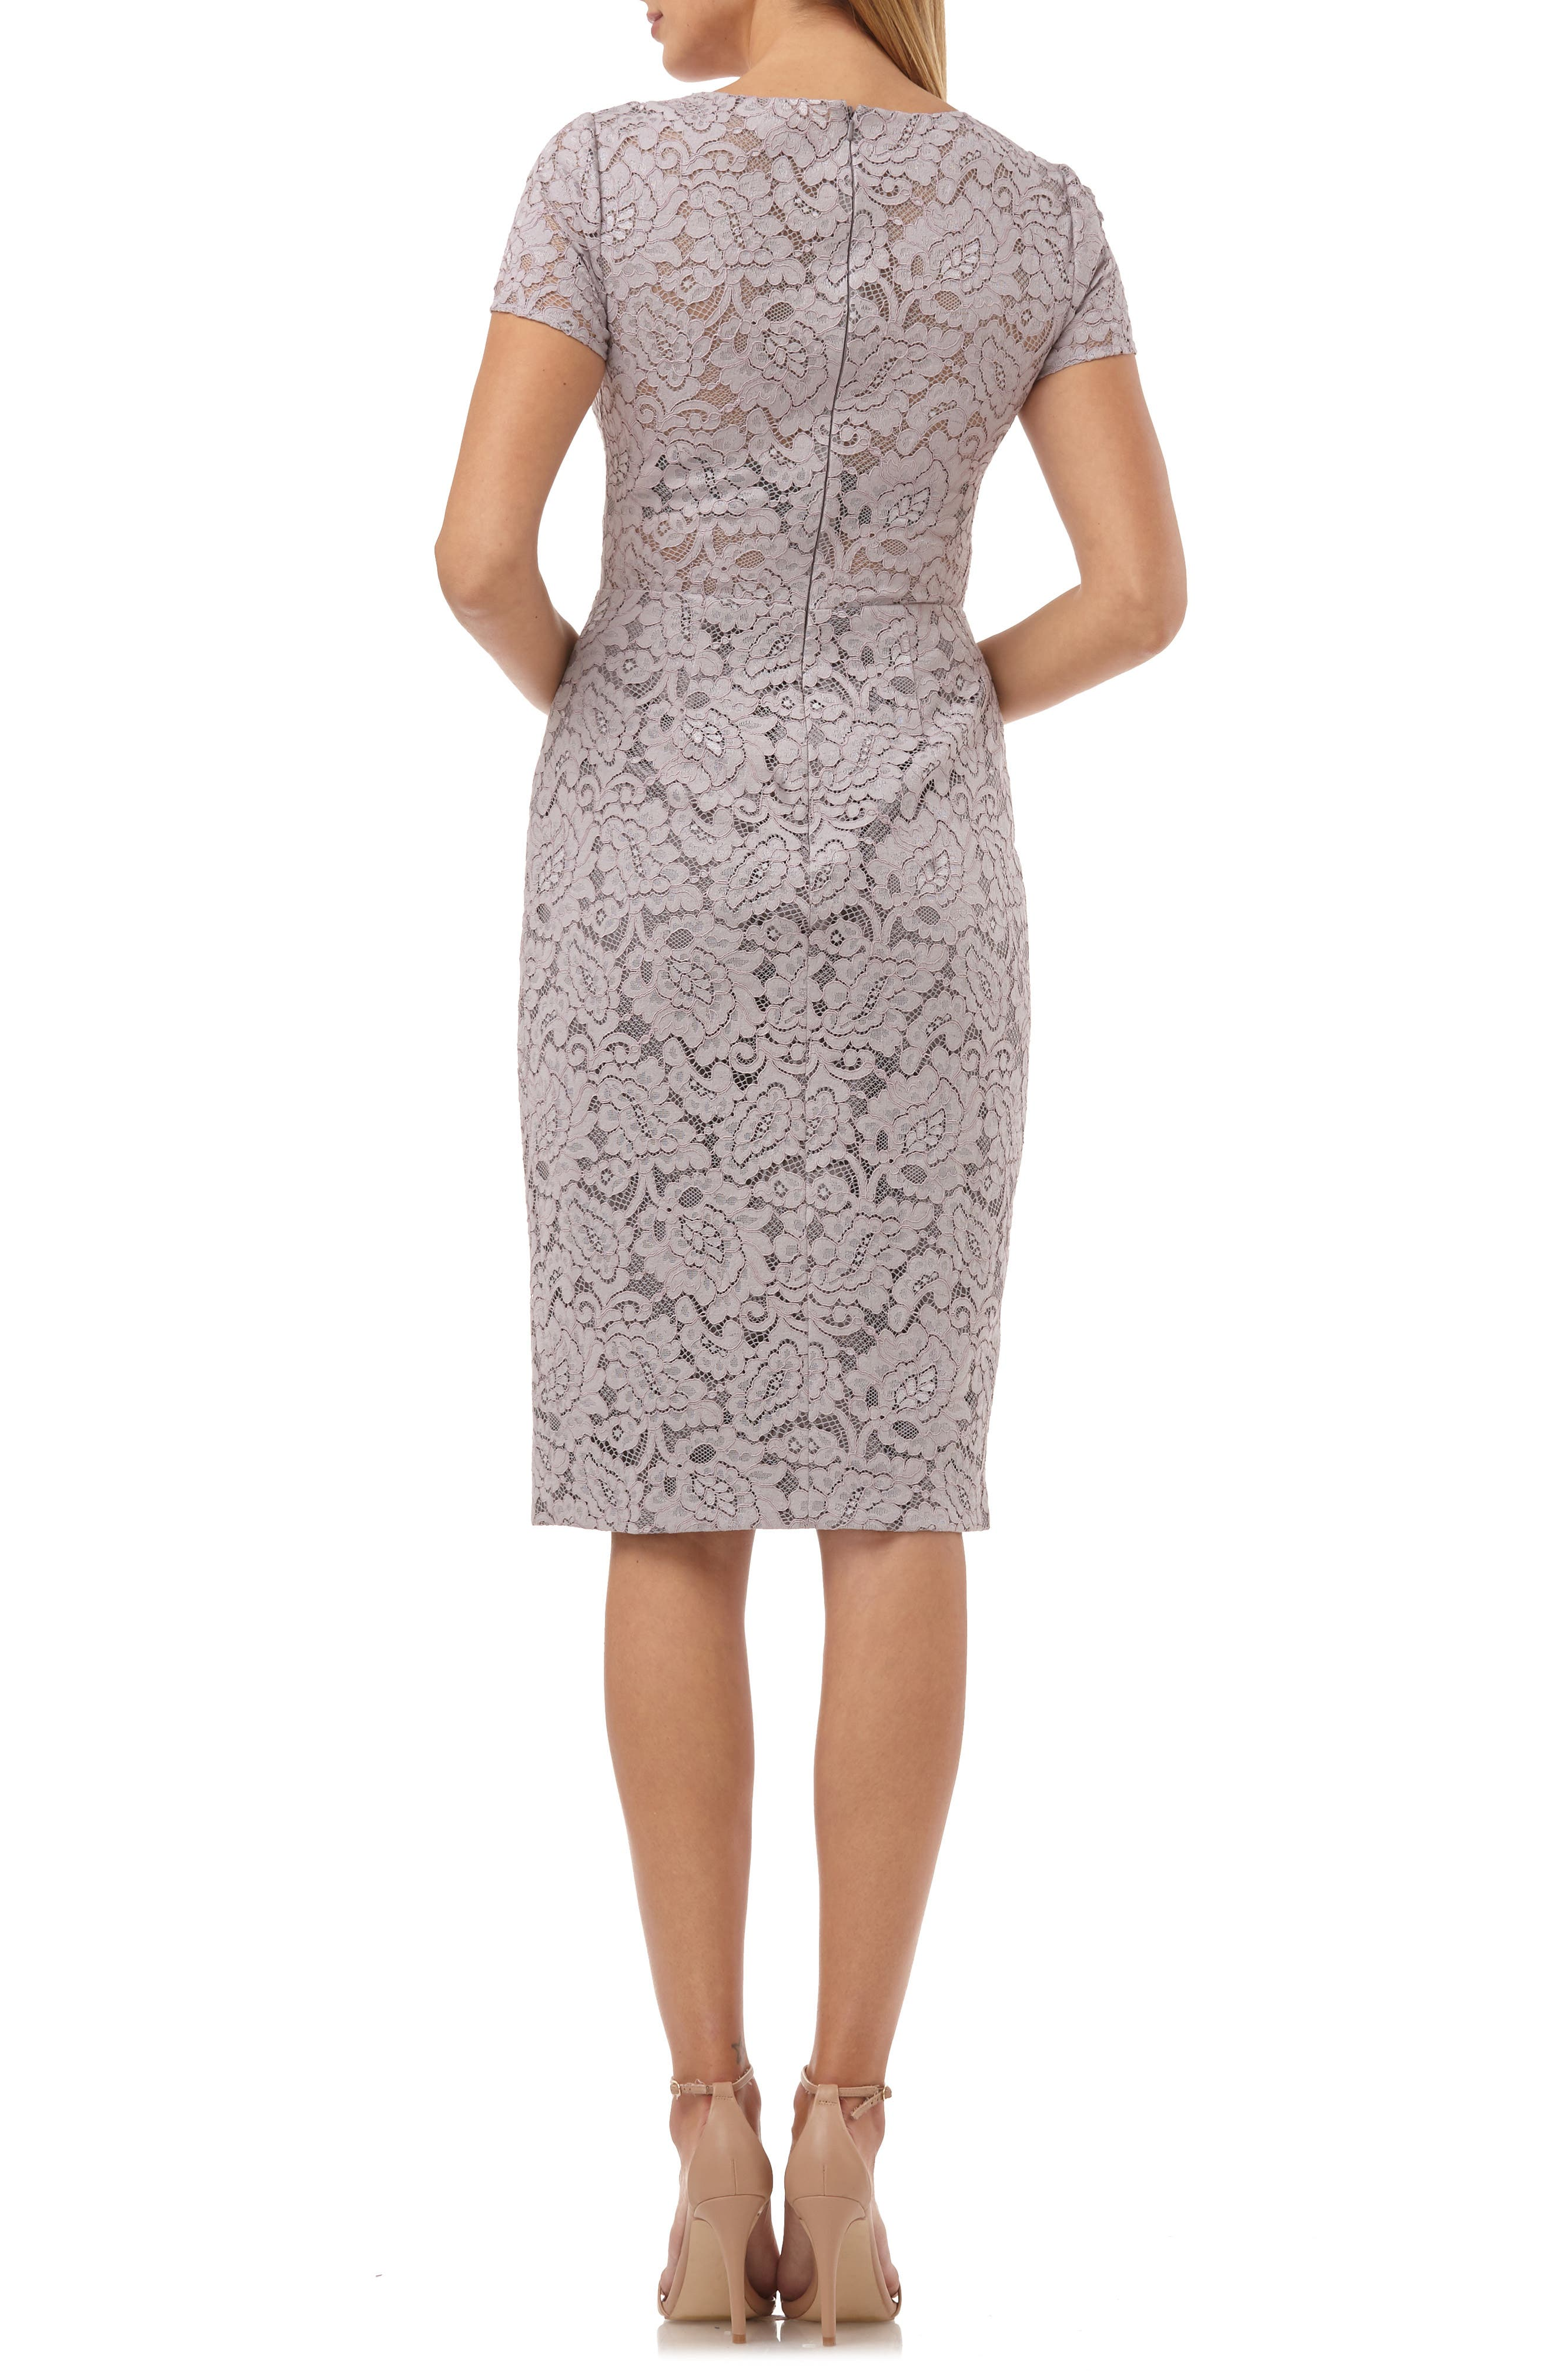 JS COLLECTIONS, Lace Cocktail Dress, Alternate thumbnail 2, color, TAUPE